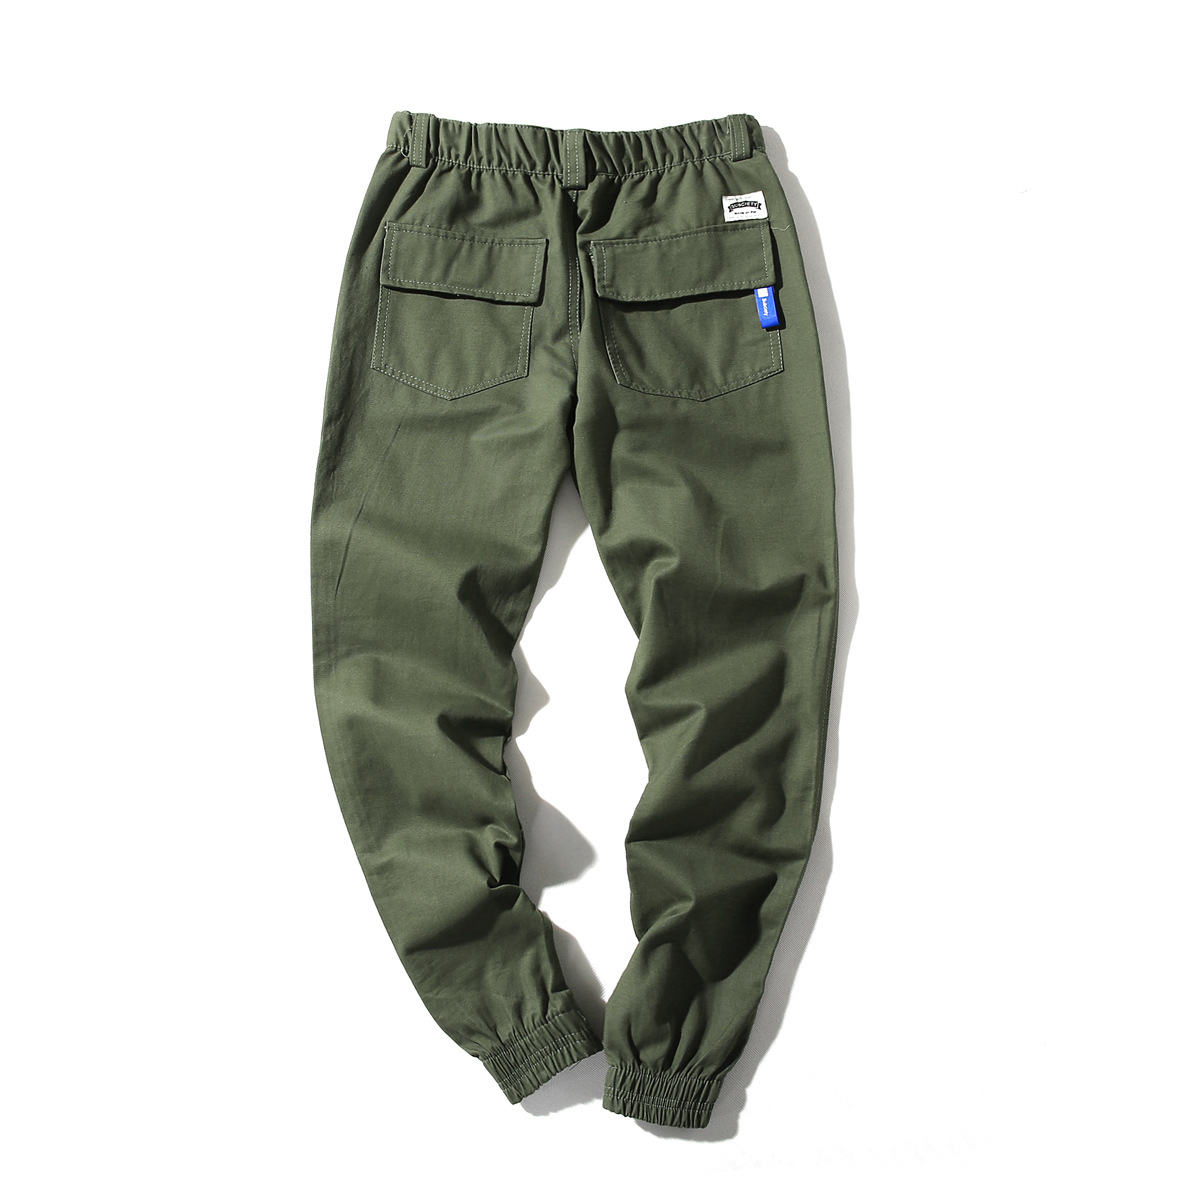 Spring Summer Pants Men's Japanese-style Popular Brand Loose-Fit Ankle Banded Pants Men's Casual Closing Skinny Cargo Trousers H